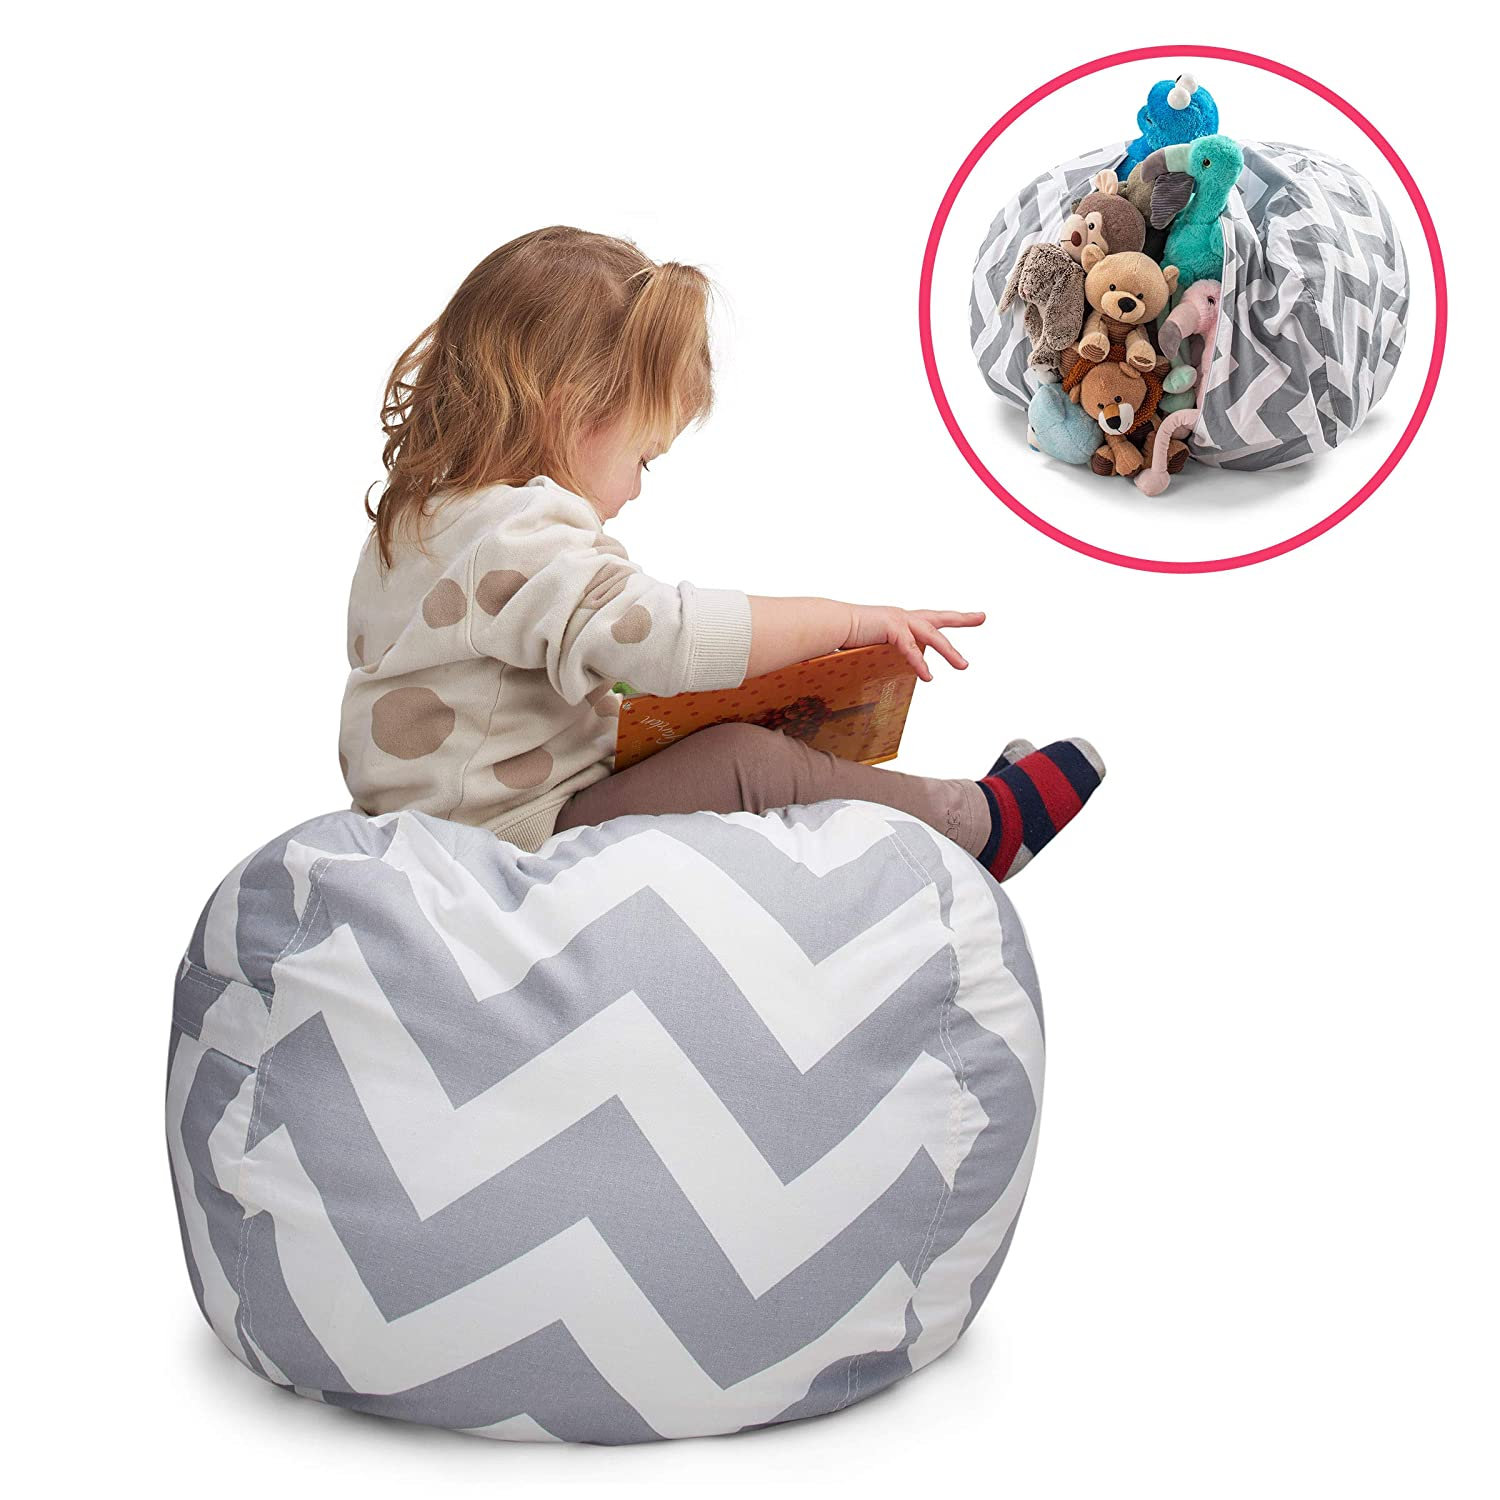 Smart Additions Bean Bag Chair – Bean Bag for Stuffed Animal Storage, Stuff and Sit Bean Bag Cover for Kids, Toy Storage Bean Bag Chair, Bright Color Zigzag Bean Bag Toy Organizer, Gray – Large